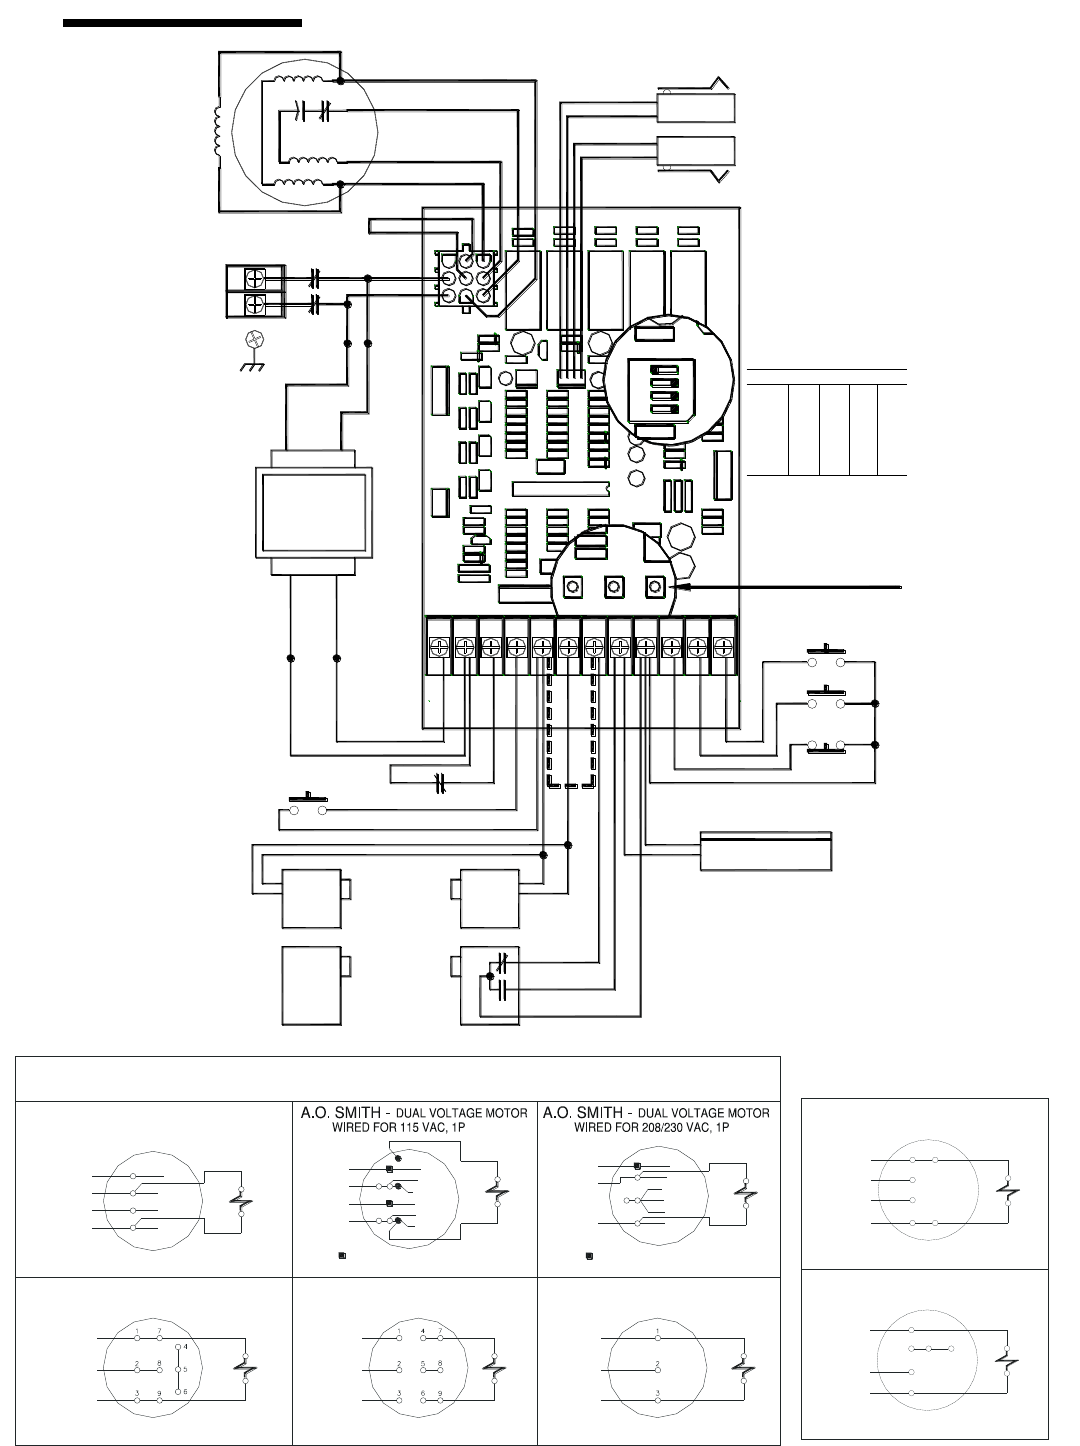 stereo wiring diagram color code with Pioneer Stereo Receiver Wiring Diagram on 7qrnd 250 1985 F250 4x4 7 5l V8 Problem additionally Sony Car Audio Wiring Diagram additionally Print page 1 112 Razyomy Amagnitol Clarion additionally Vcr and cable hookup diagrams together with Wiring Diagram For 2003 Dodge Ram 1500.